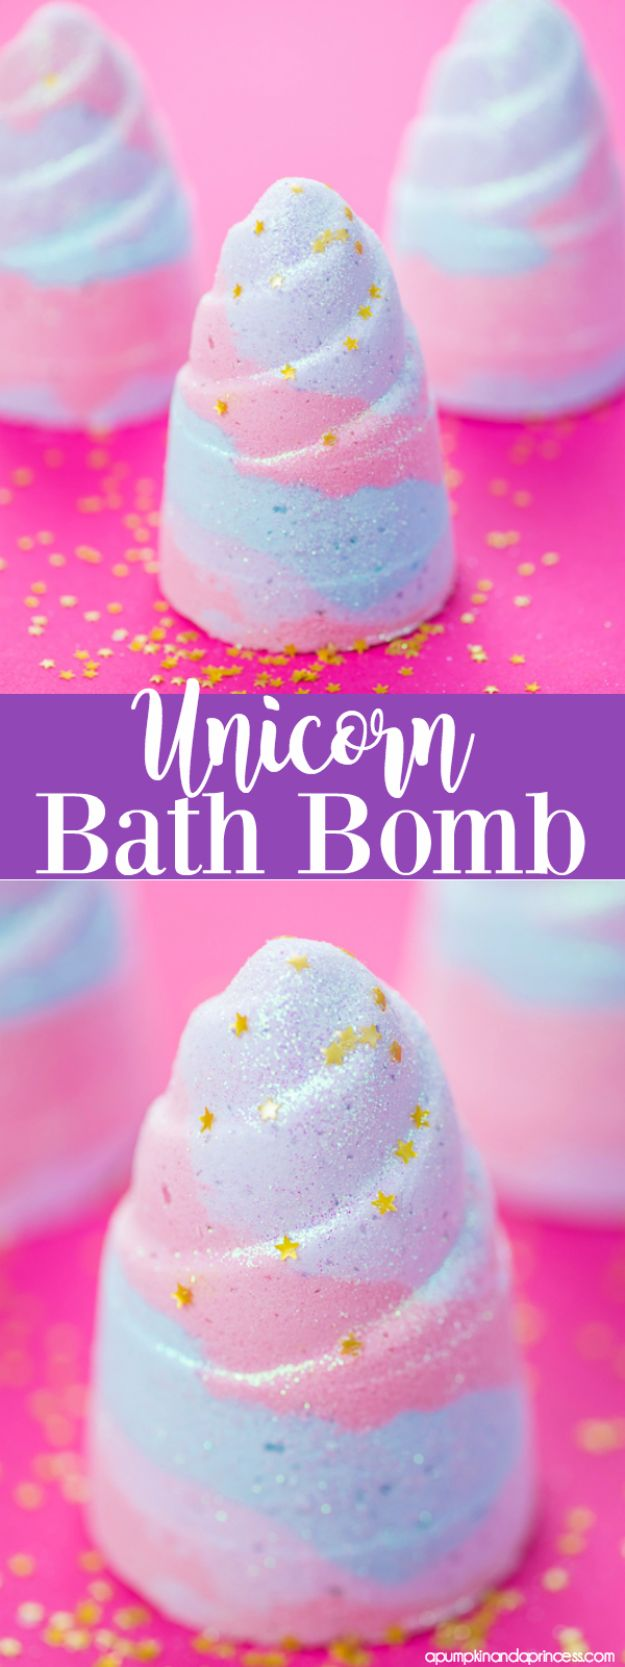 DIY Ideas With Unicorns - DIY Unicorn Bath Bomb - Cute and Easy DIY Projects for Unicorn Lovers - Wall and Home Decor Projects, Things To Make and Sell on Etsy - Quick Gifts to Make for Friends and Family - Homemade No Sew Projects and Pillows - Fun Jewelry, Desk Decor Cool Clothes and Accessories